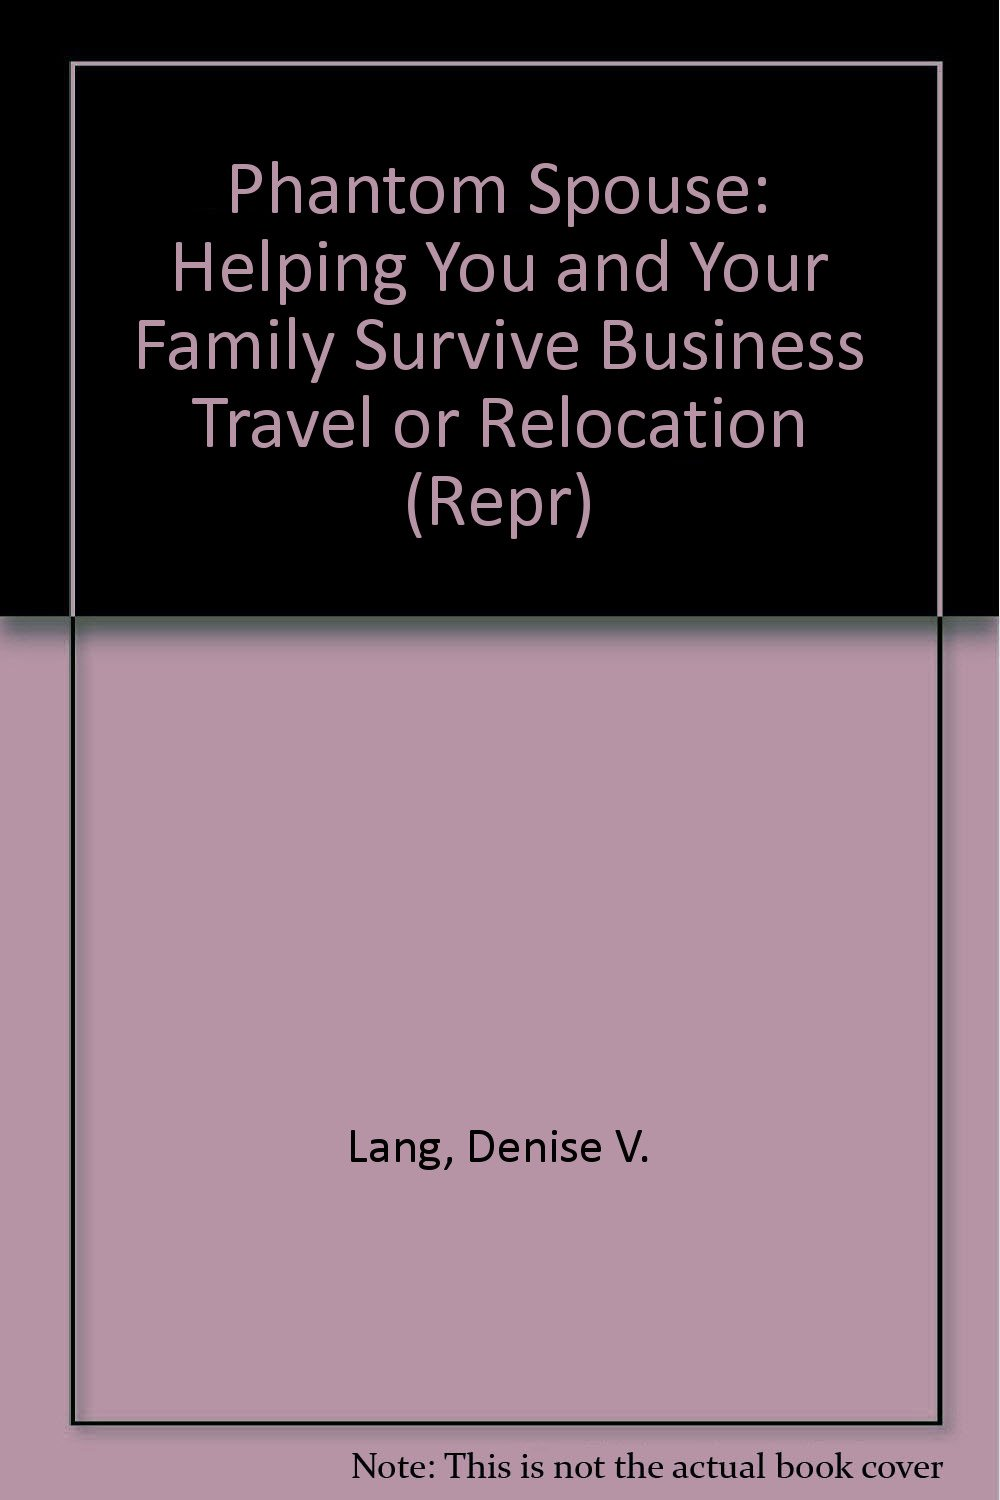 The Phantom Spouse: Helping You and Your Family Survive Business Travel or Relocation (Repr)